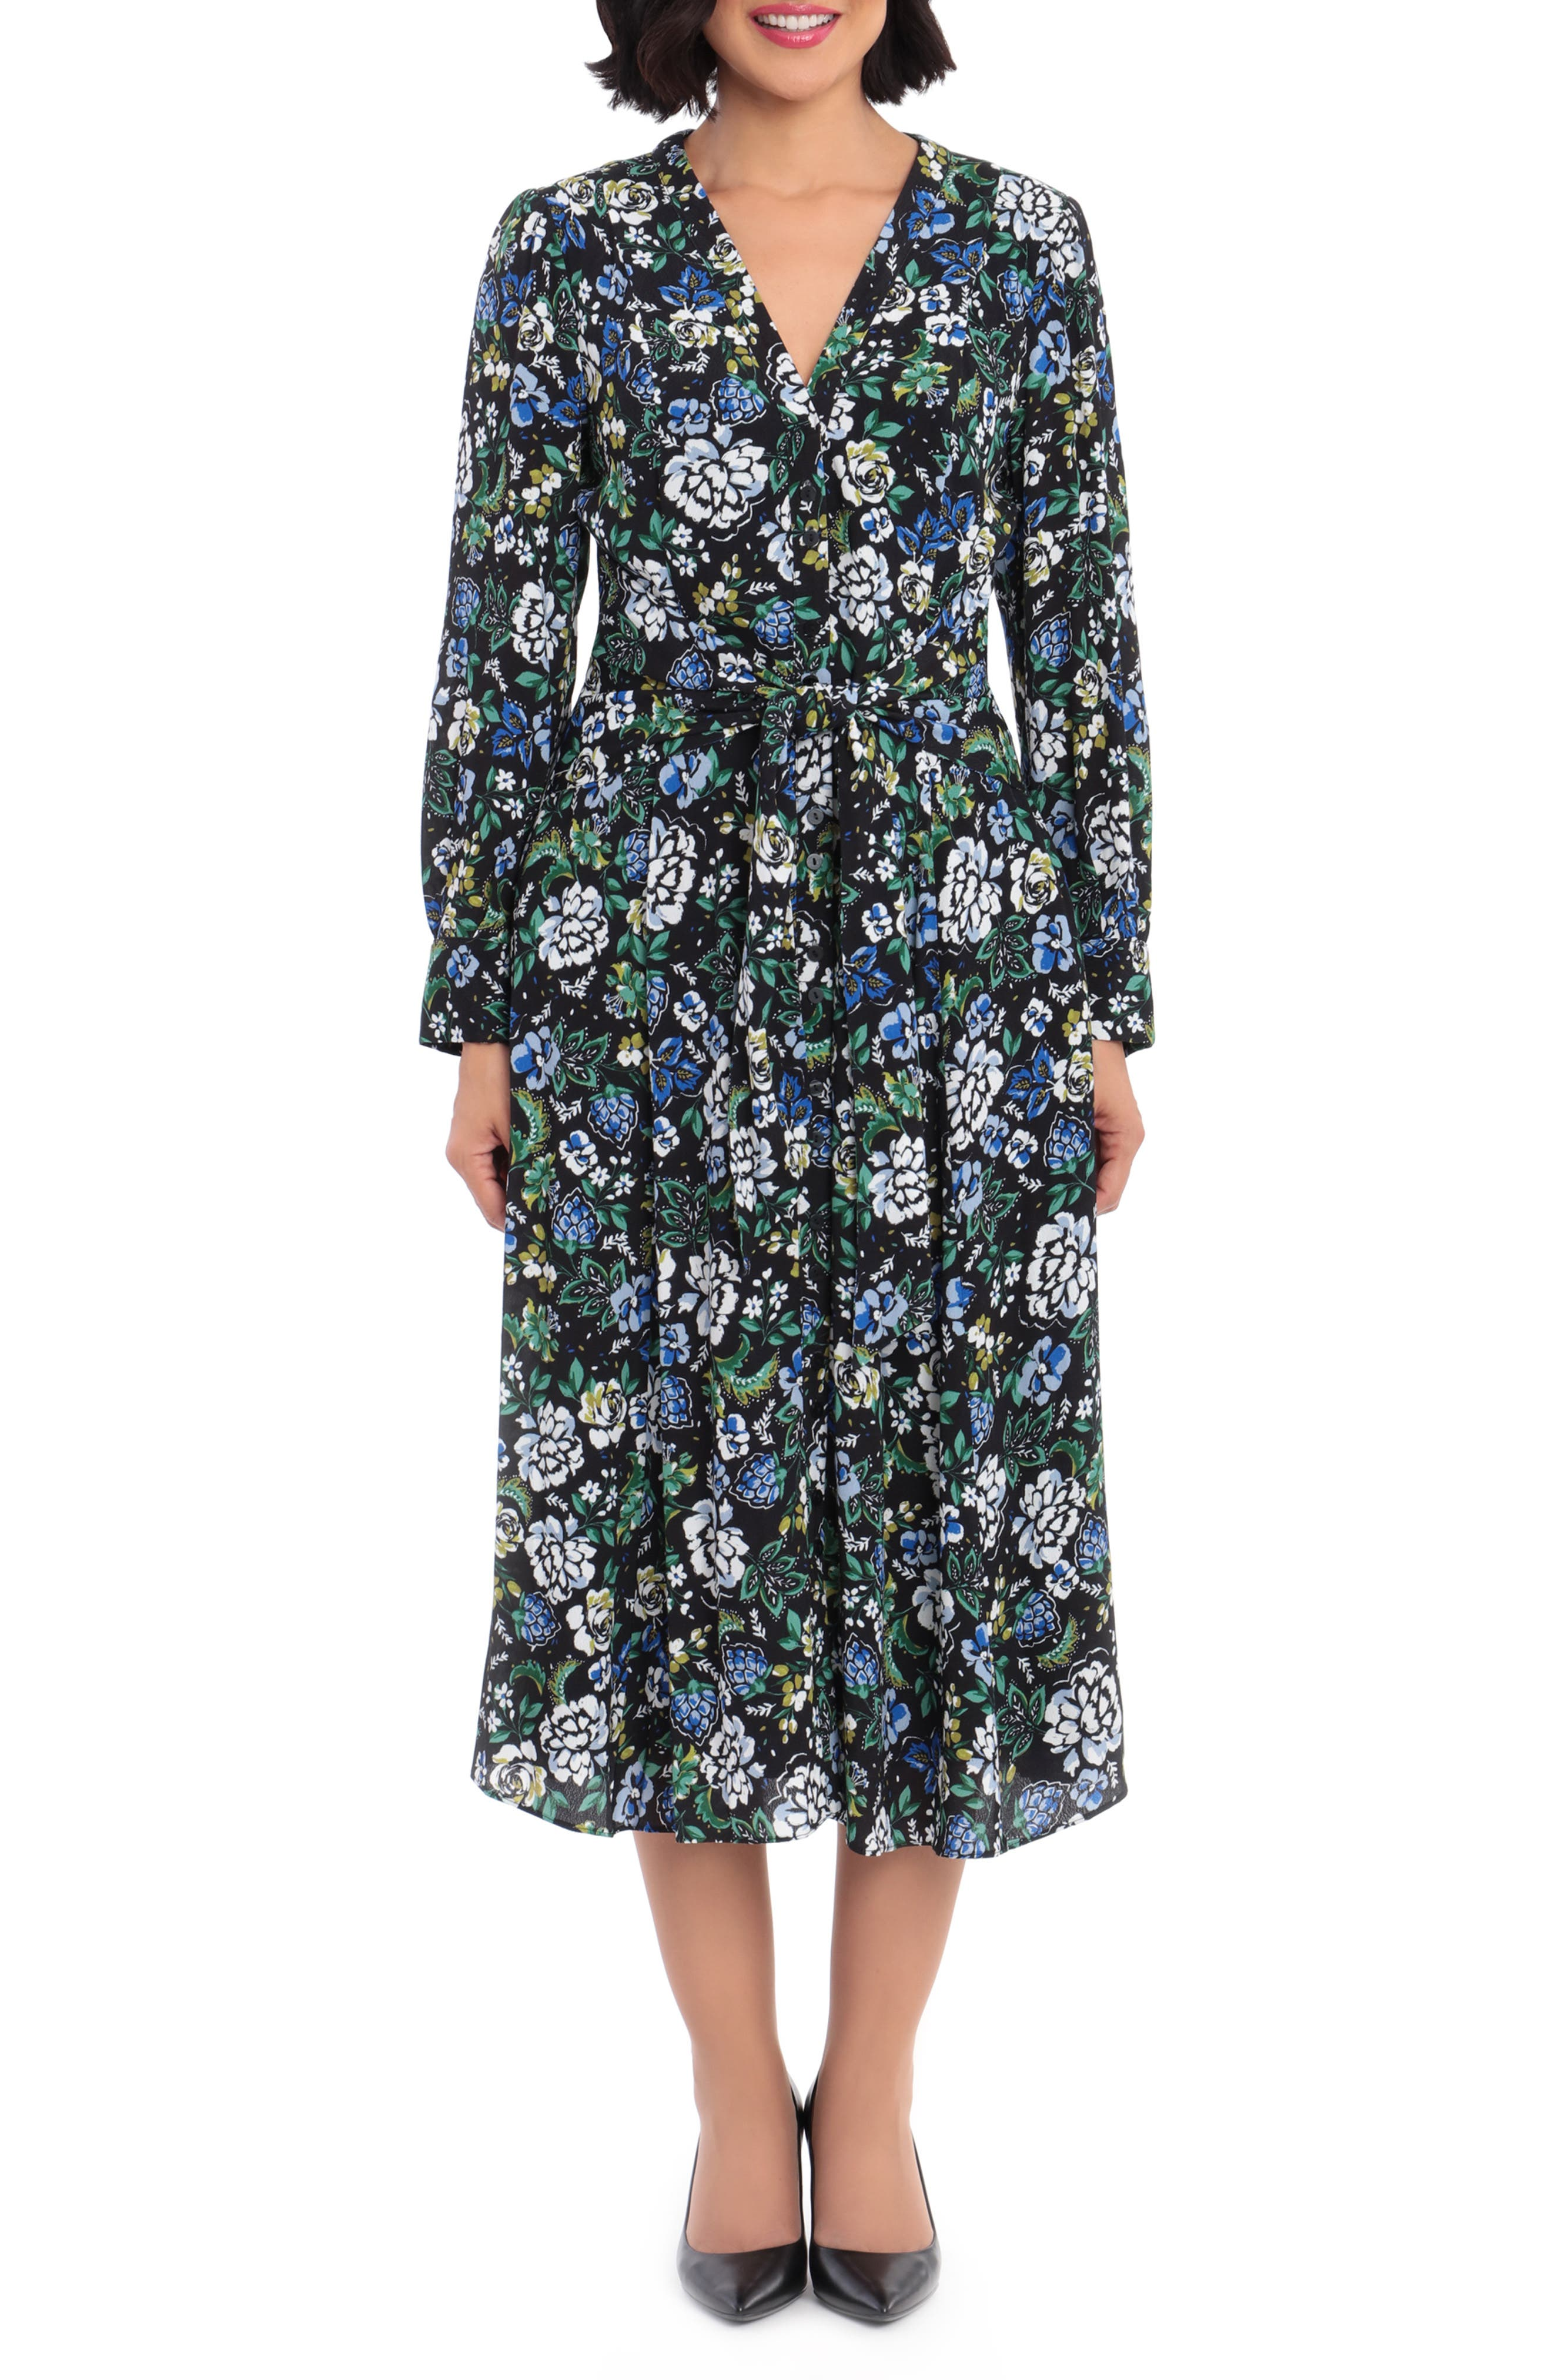 1980s Clothing, Fashion | 80s Style Clothes Womens Maggy London Floral Long Sleeve Midi Shirtdress Size 14 - Black $158.00 AT vintagedancer.com